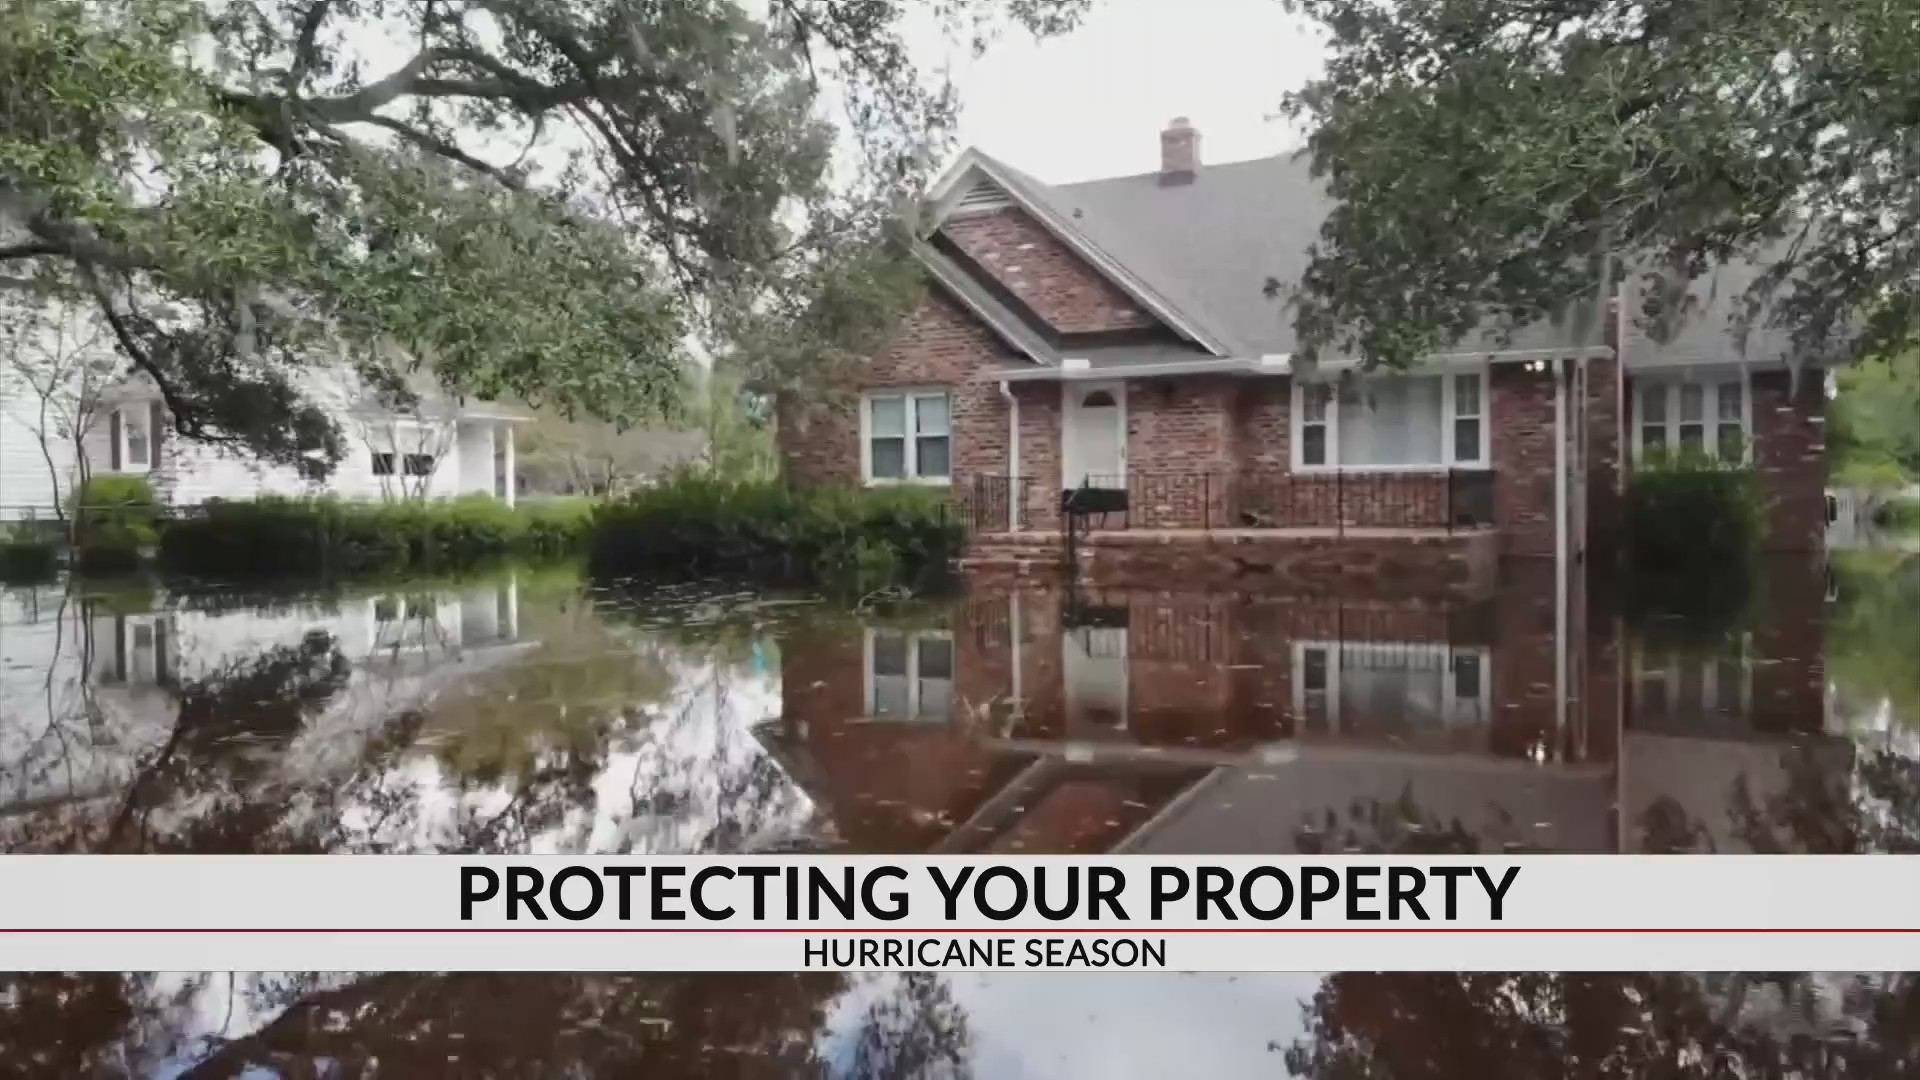 The Inland Threat: Protecting your house